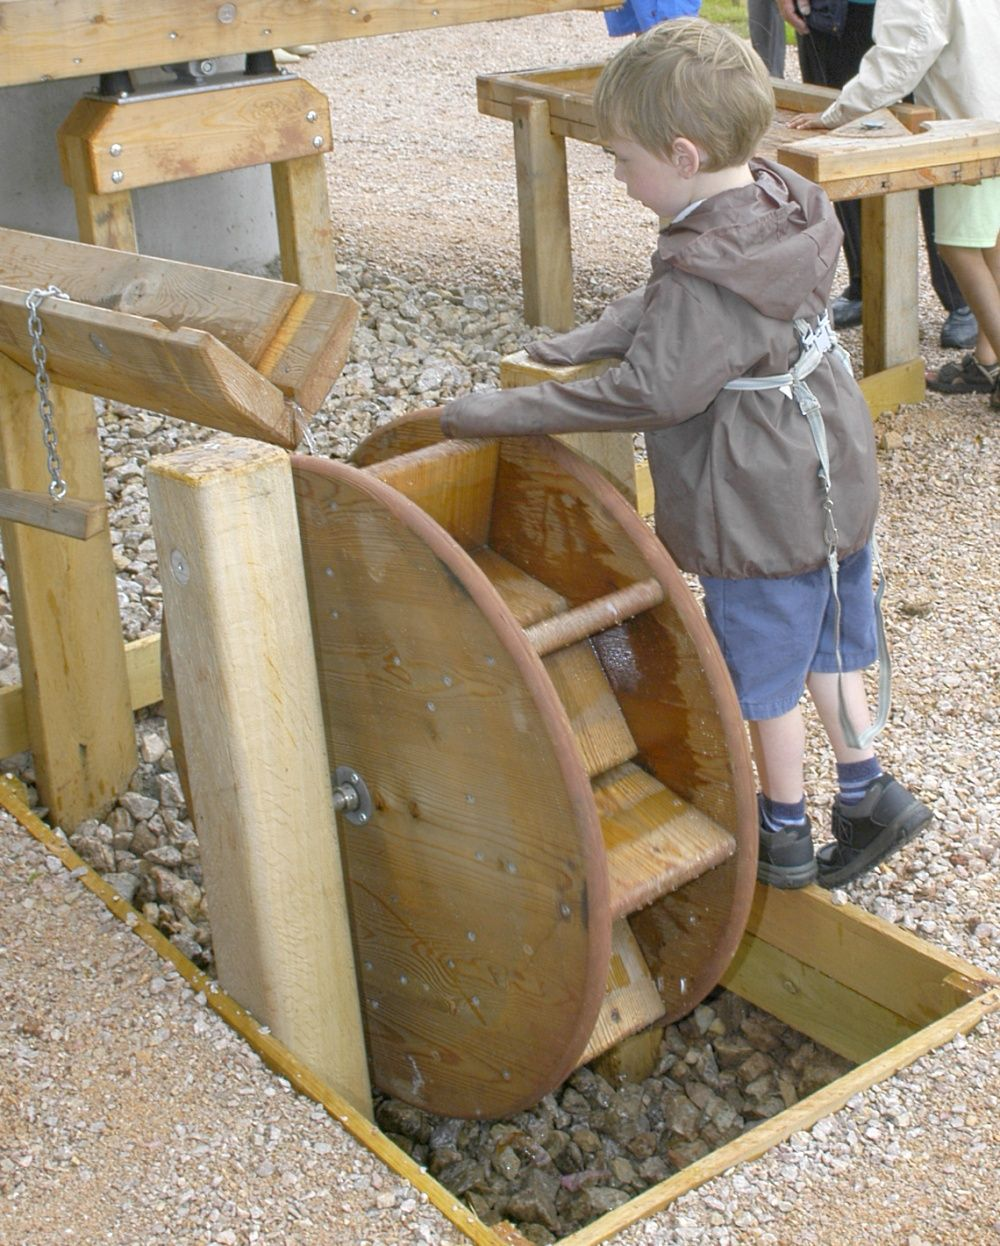 Outdoor Play Equipment: Natural Outdoor Wooden Play Equipment & Design